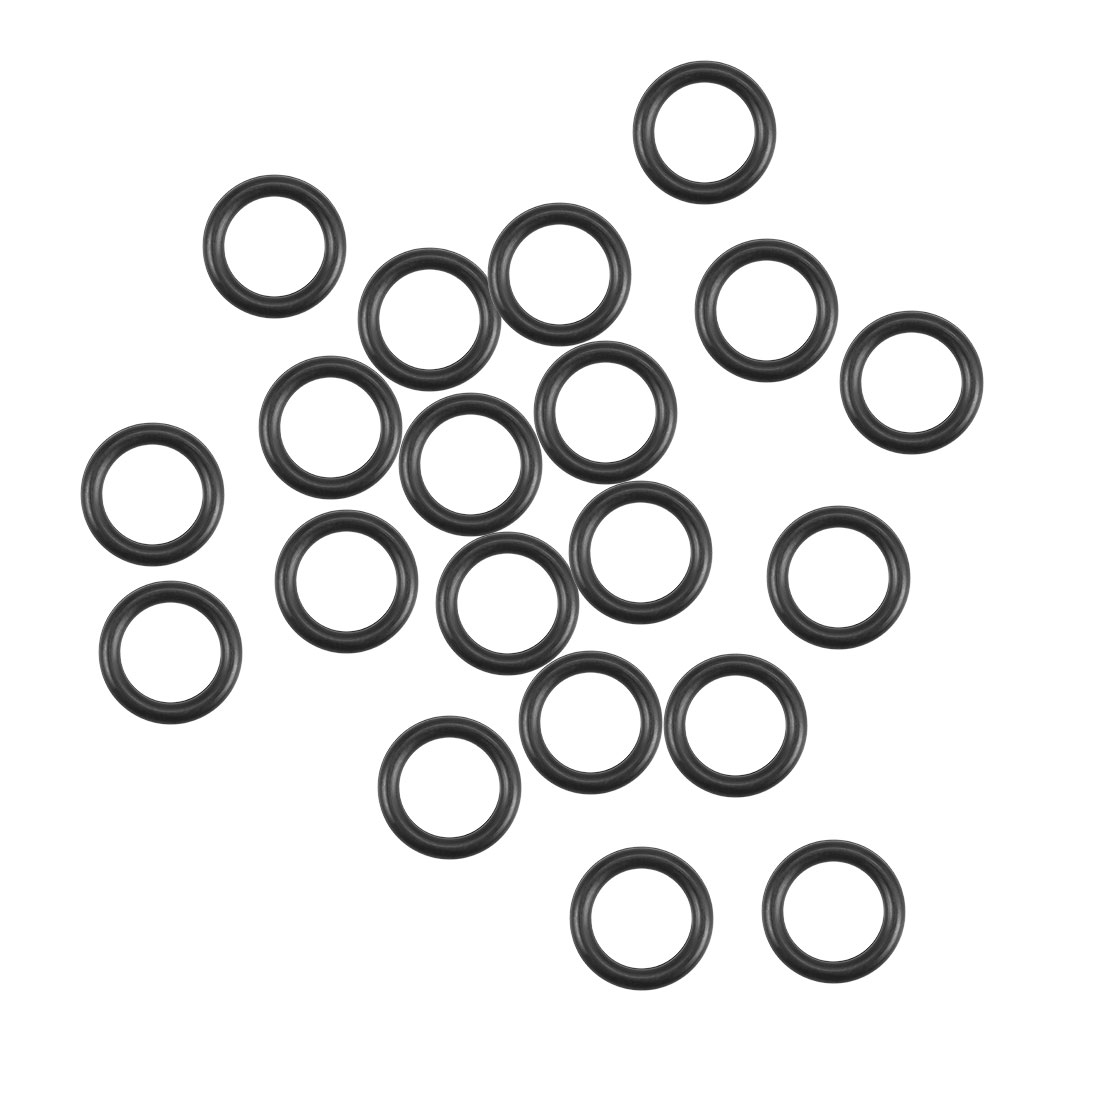 O-Rings Nitrile Rubber 8.2mm x 11.8mm x 1.8mm Round Seal Gasket 20 Pcs